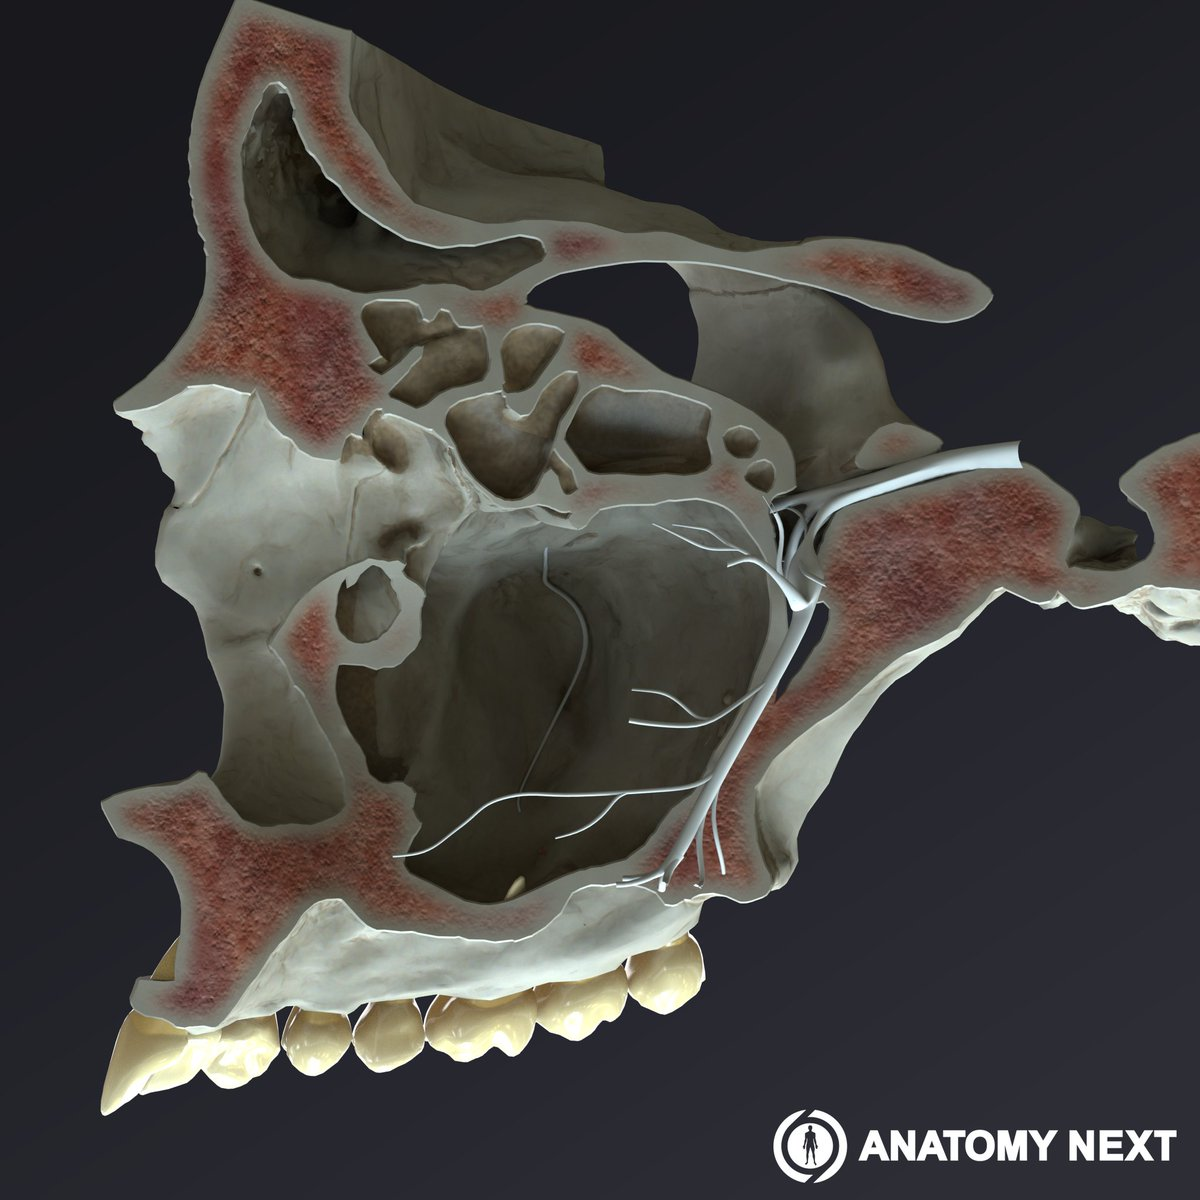 Anatomy Next On Twitter The Maxillary Sinus By Anatomynext